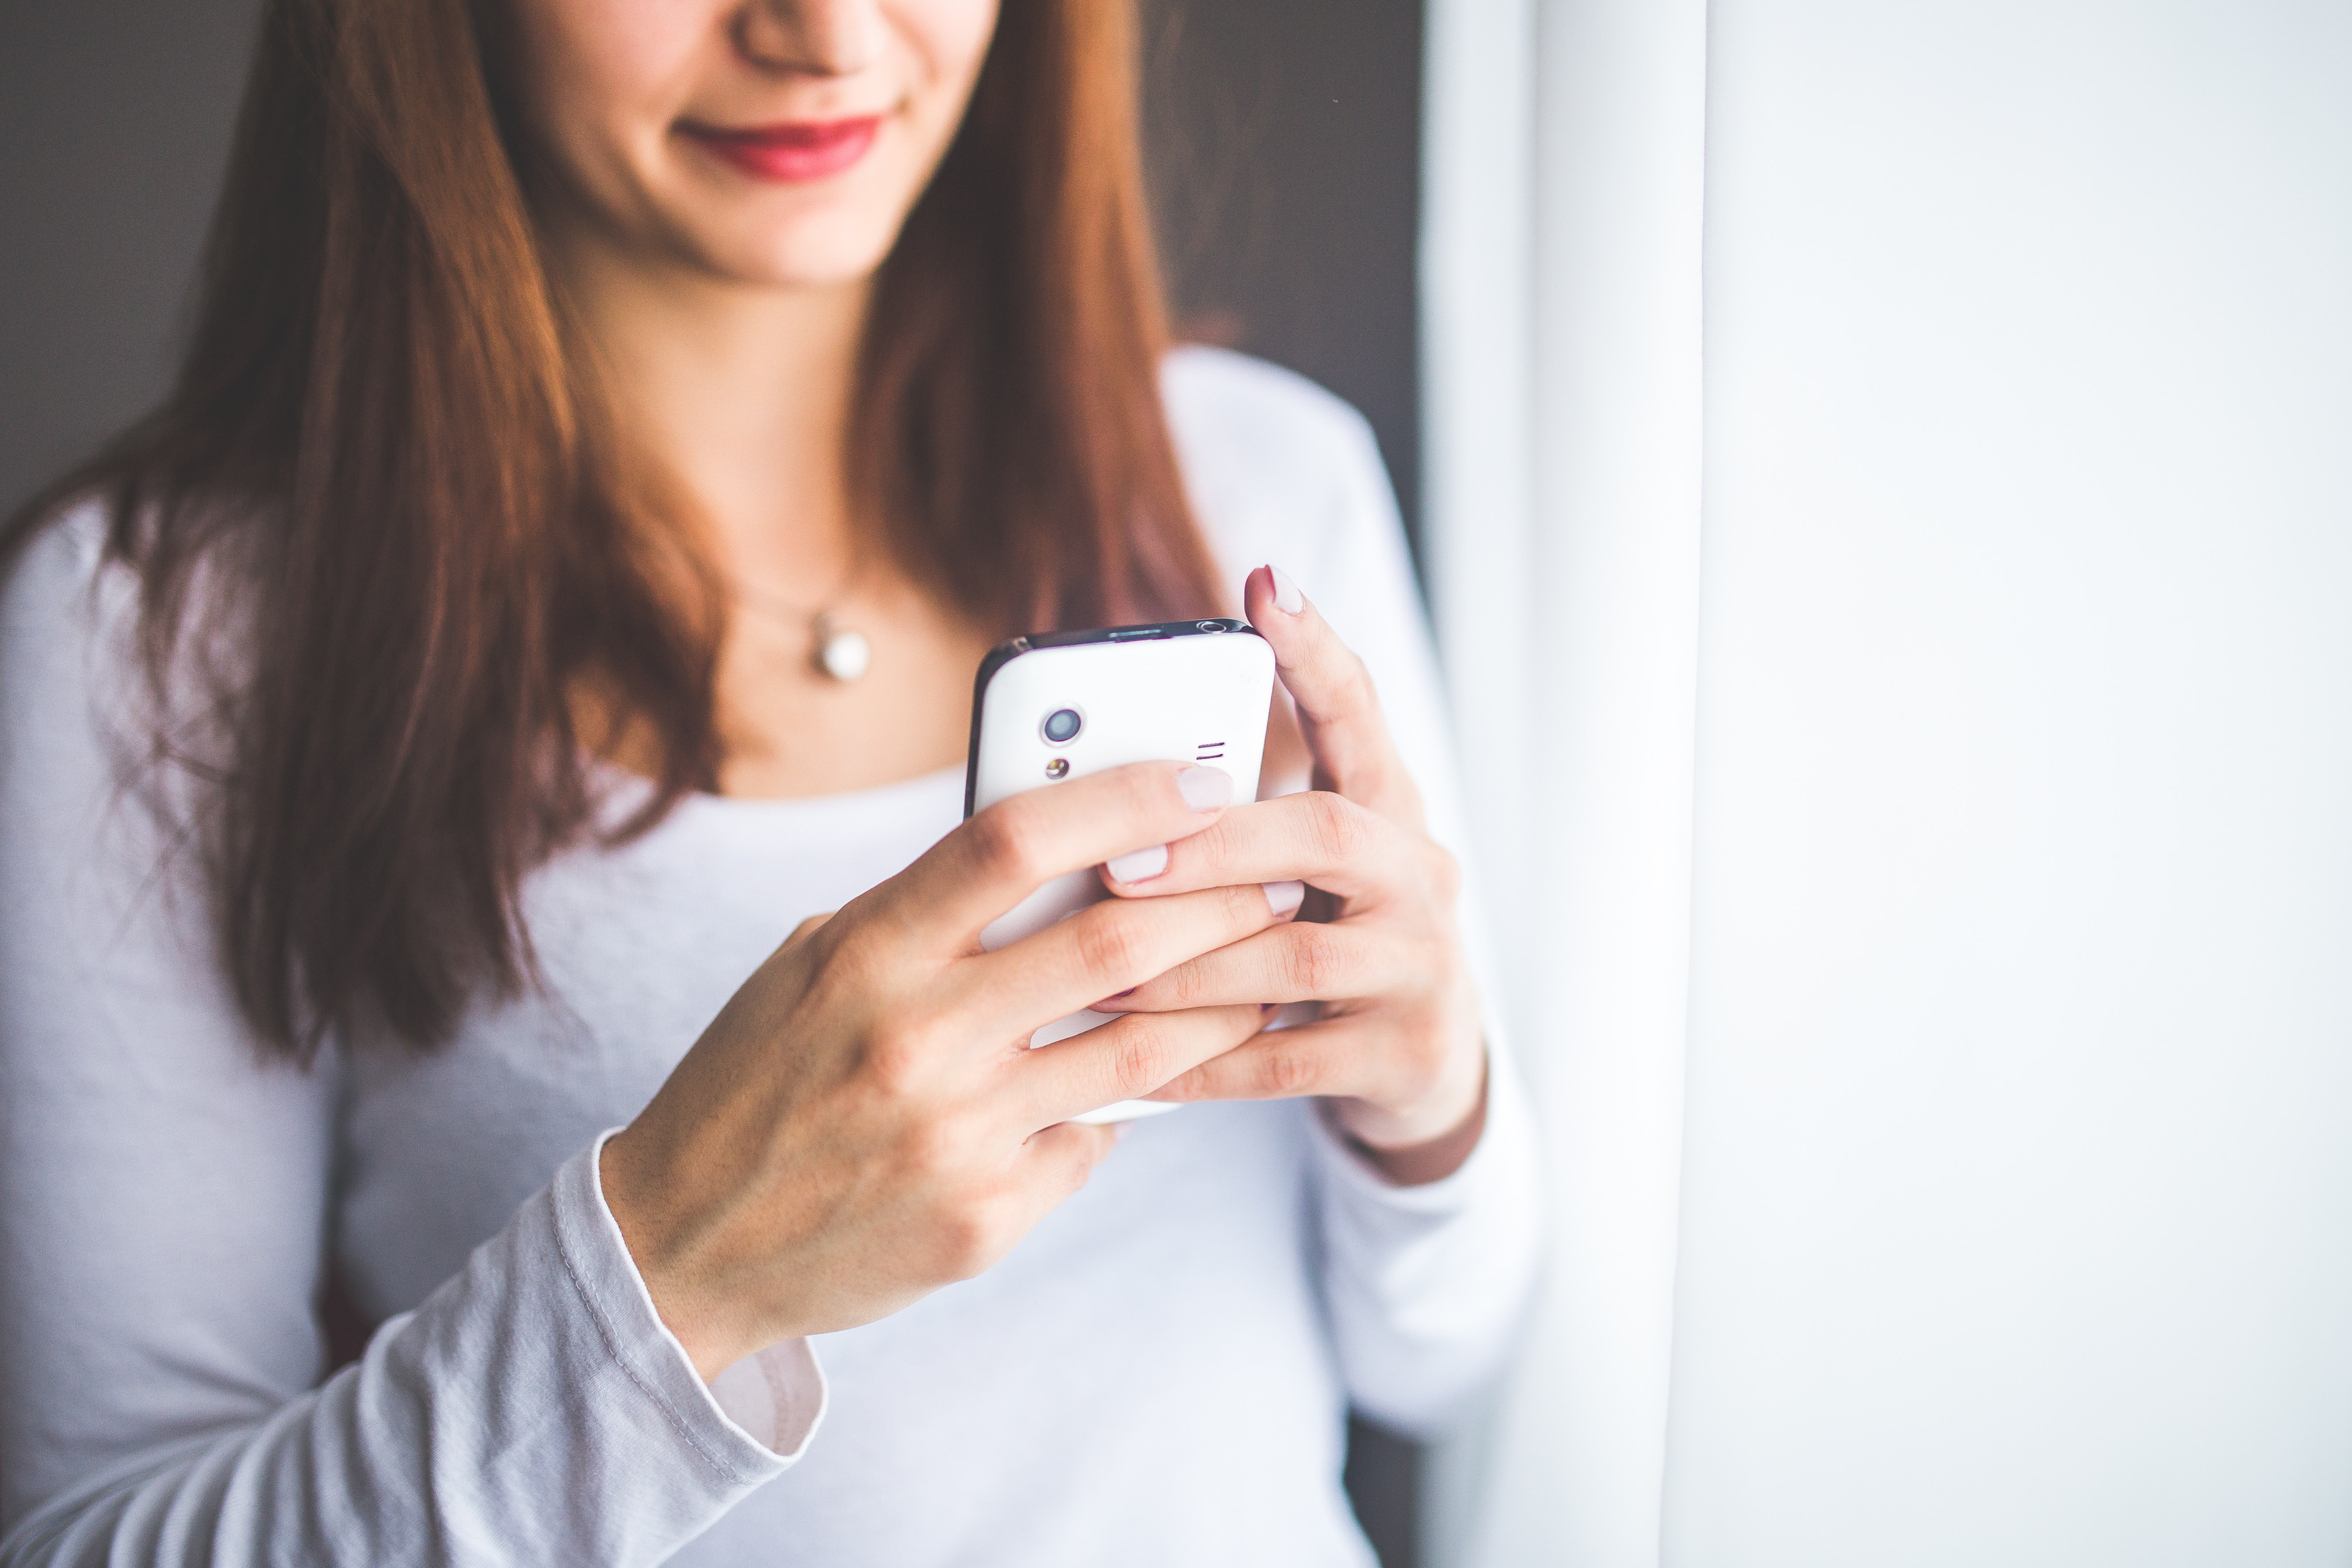 Women on her phone communicating through text